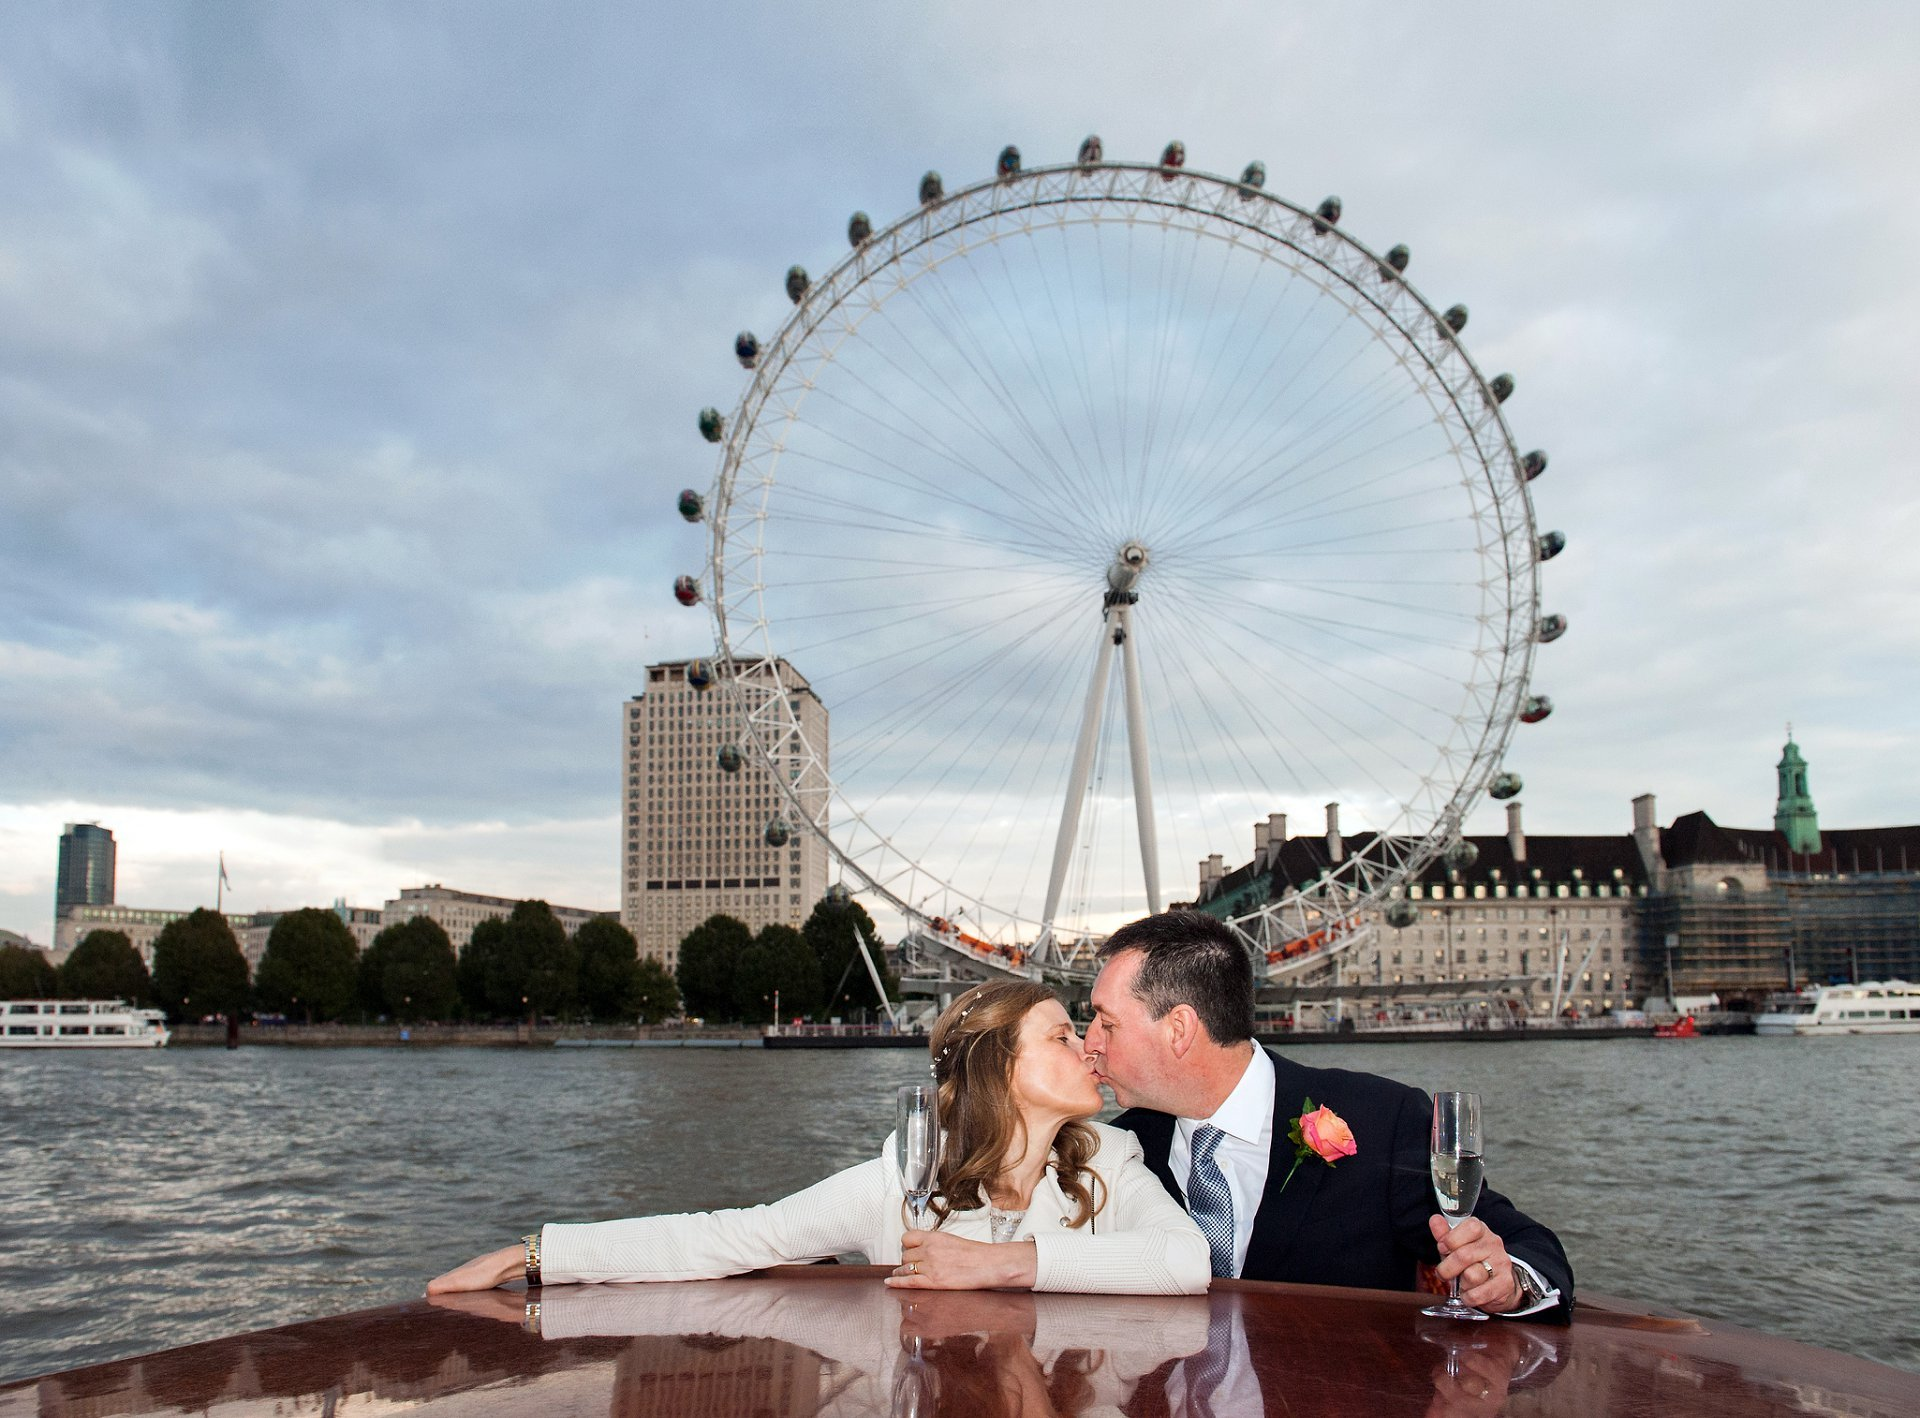 bride-groom-wedding-day-thames-river-london-thames-limo-charter-boat-westminster-boating-base-wedding-chelsea-old-town-hall-wedding-emma-duggan-photographer-london-eye